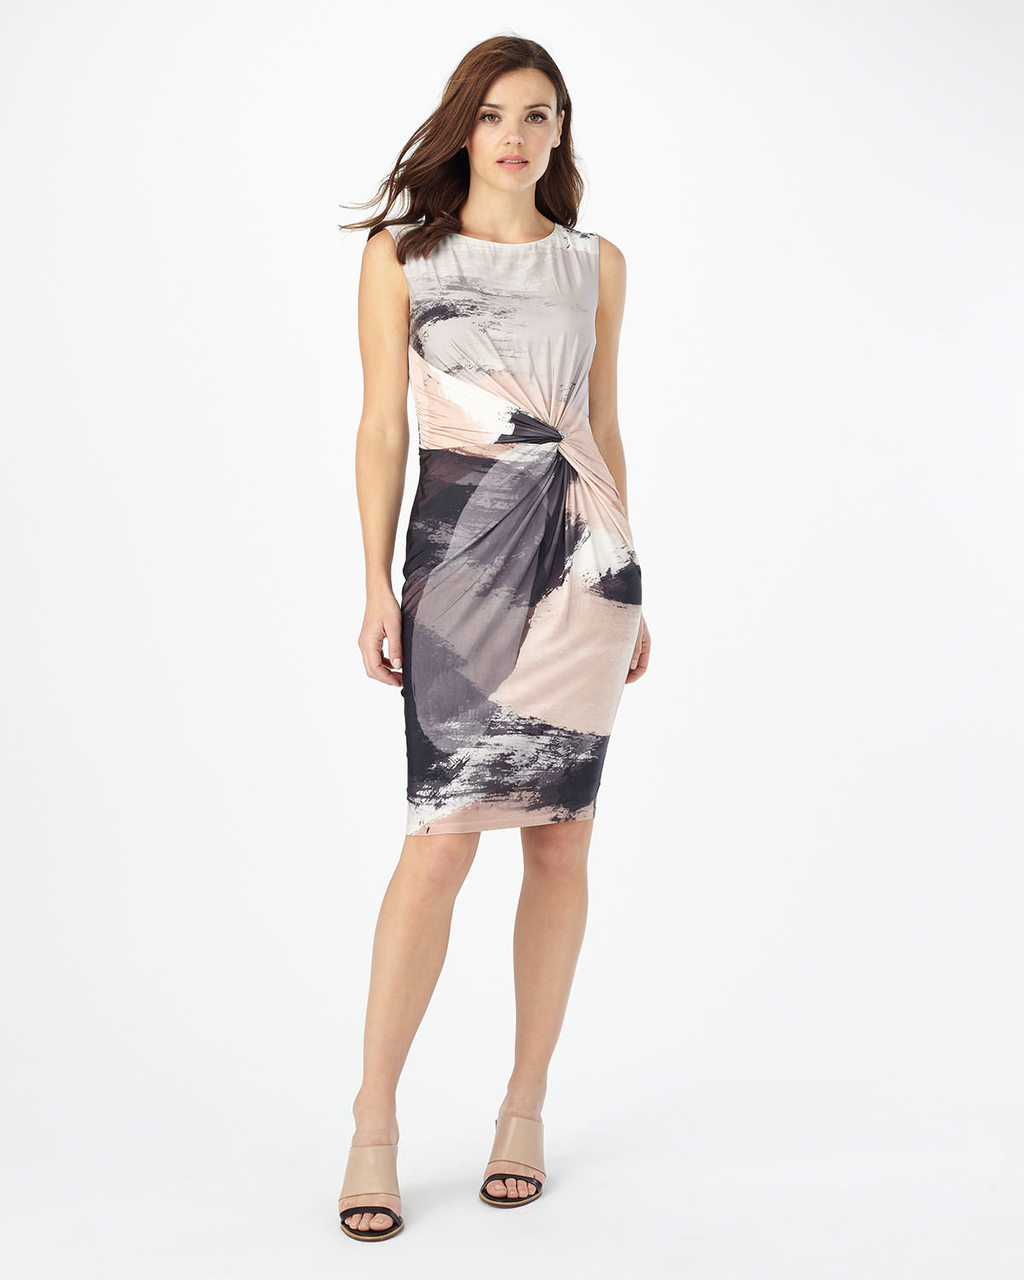 Fabienne Print Dress - fit: tight; sleeve style: sleeveless; style: bodycon; waist detail: twist front waist detail/nipped in at waist on one side/soft pleats/draping/ruching/gathering waist detail; secondary colour: blush; predominant colour: light grey; occasions: evening; length: on the knee; fibres: viscose/rayon - stretch; neckline: crew; sleeve length: sleeveless; pattern type: fabric; pattern: patterned/print; texture group: jersey - stretchy/drapey; multicoloured: multicoloured; season: s/s 2016; wardrobe: event